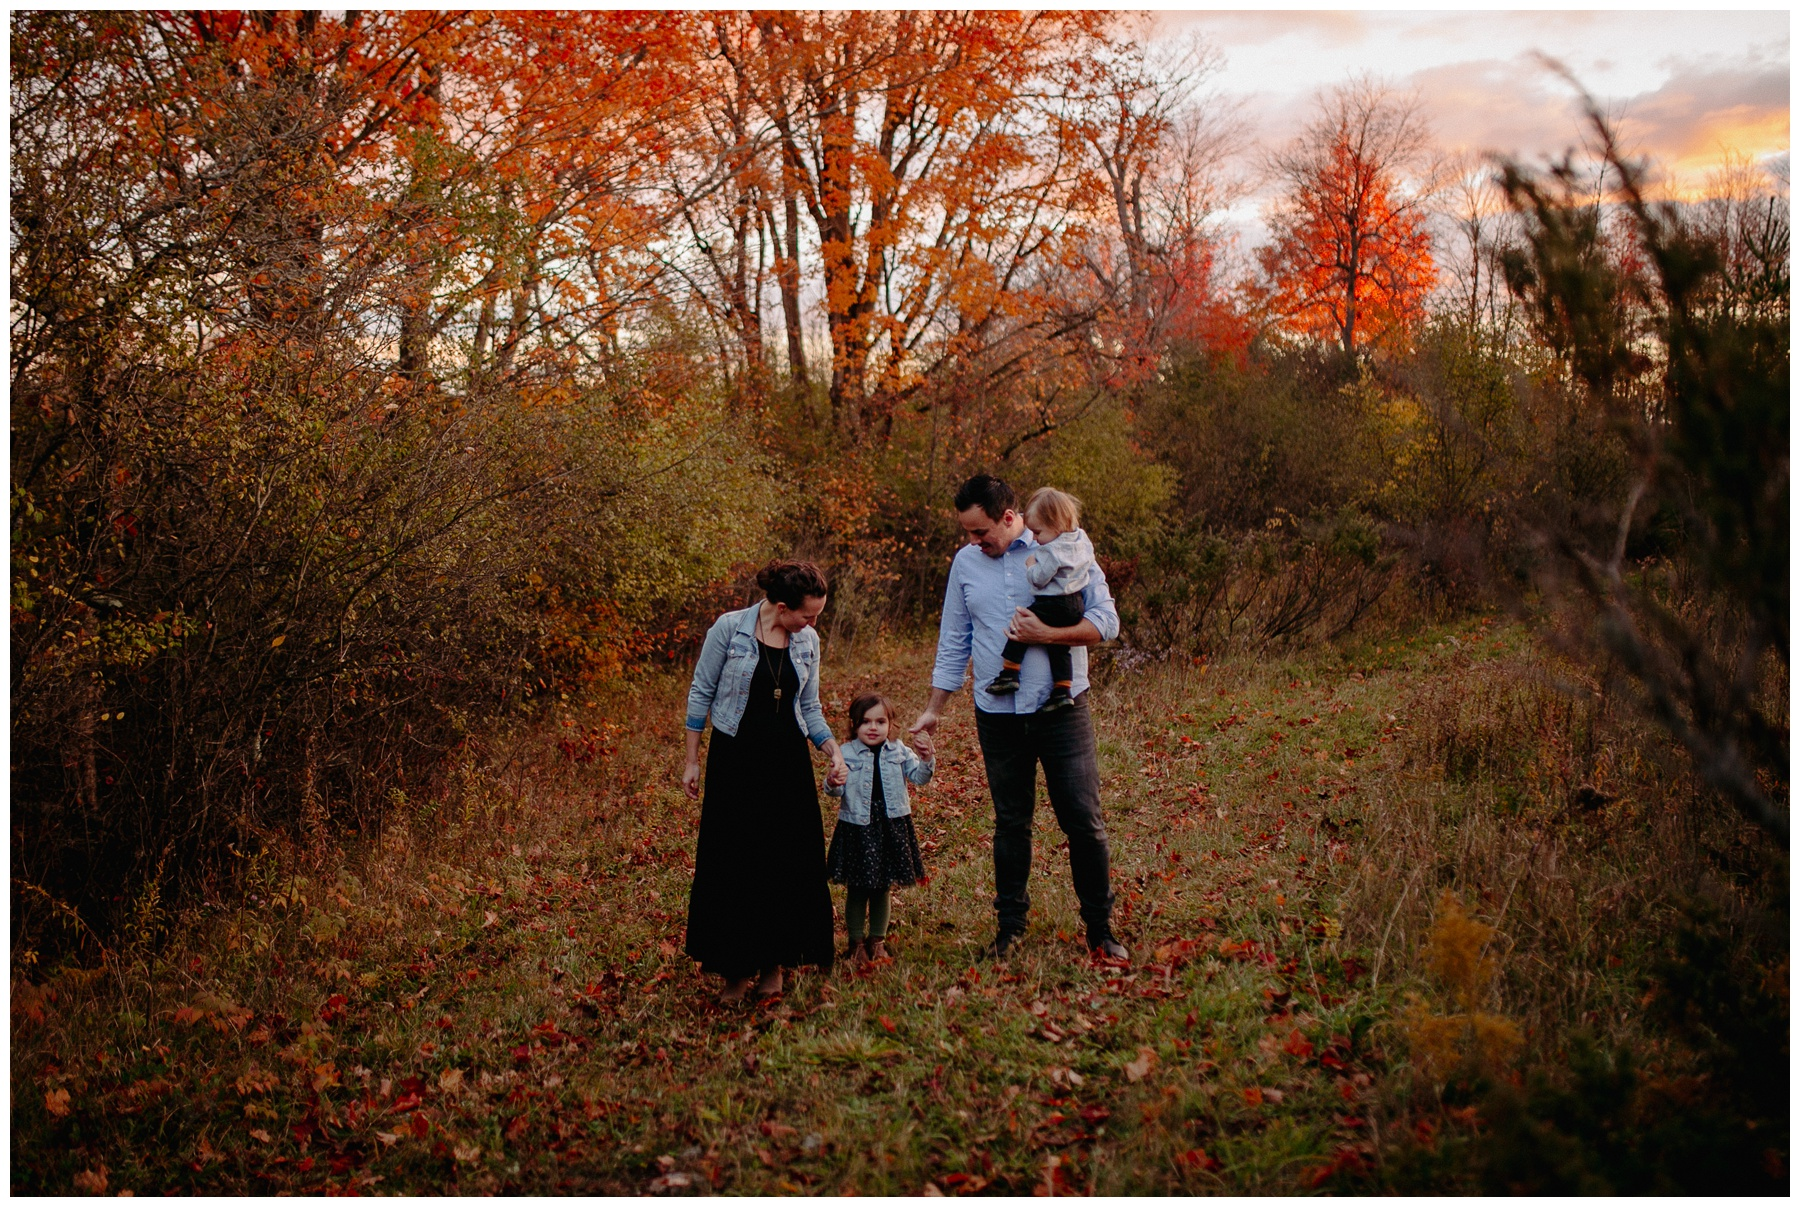 kerry ford photography - fall autumn family session perth039.jpg